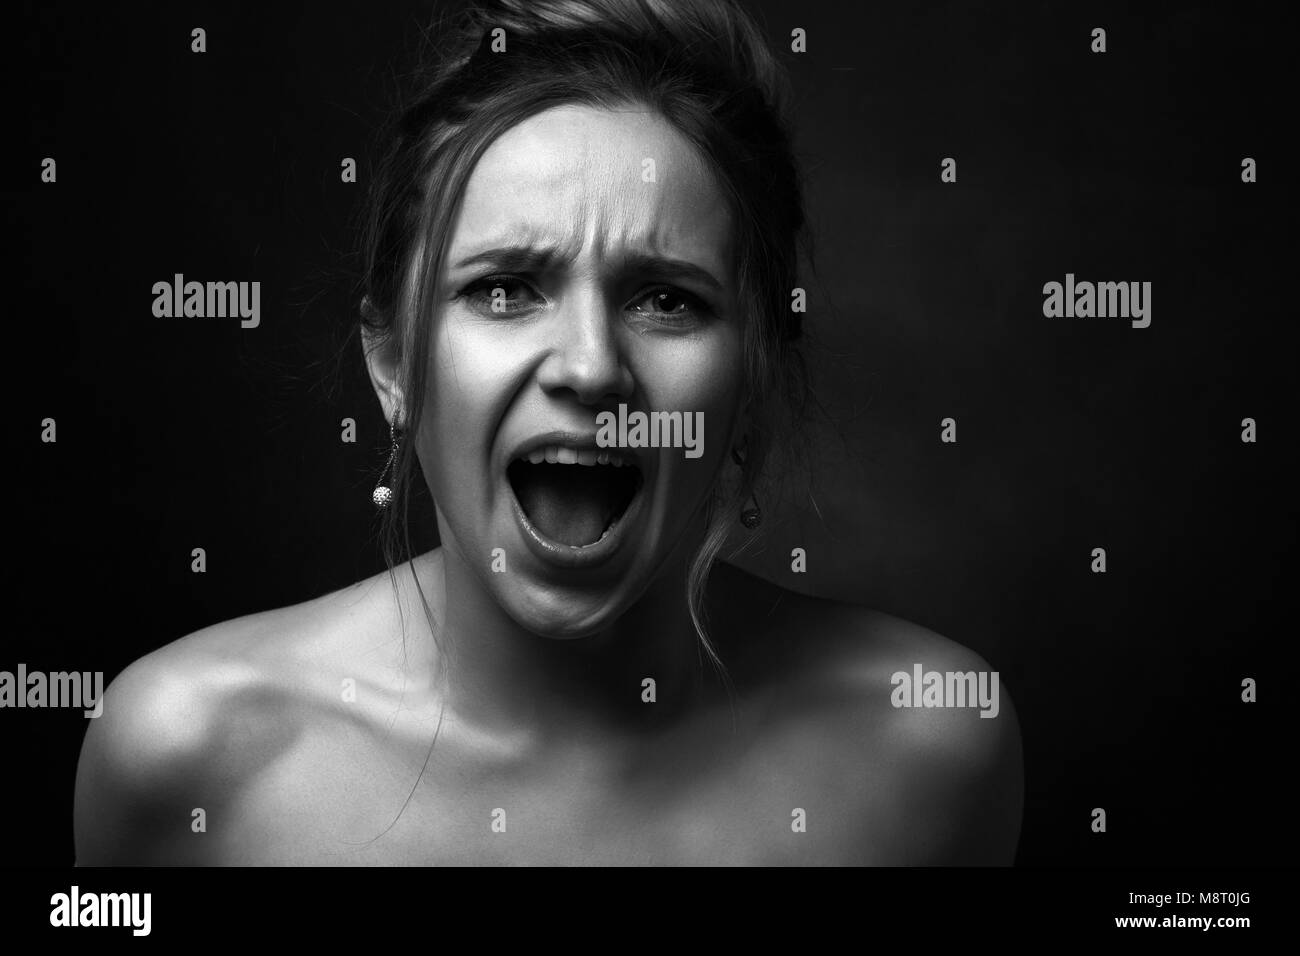 young angry woman on black background screaming on camera, monochrome - Stock Image